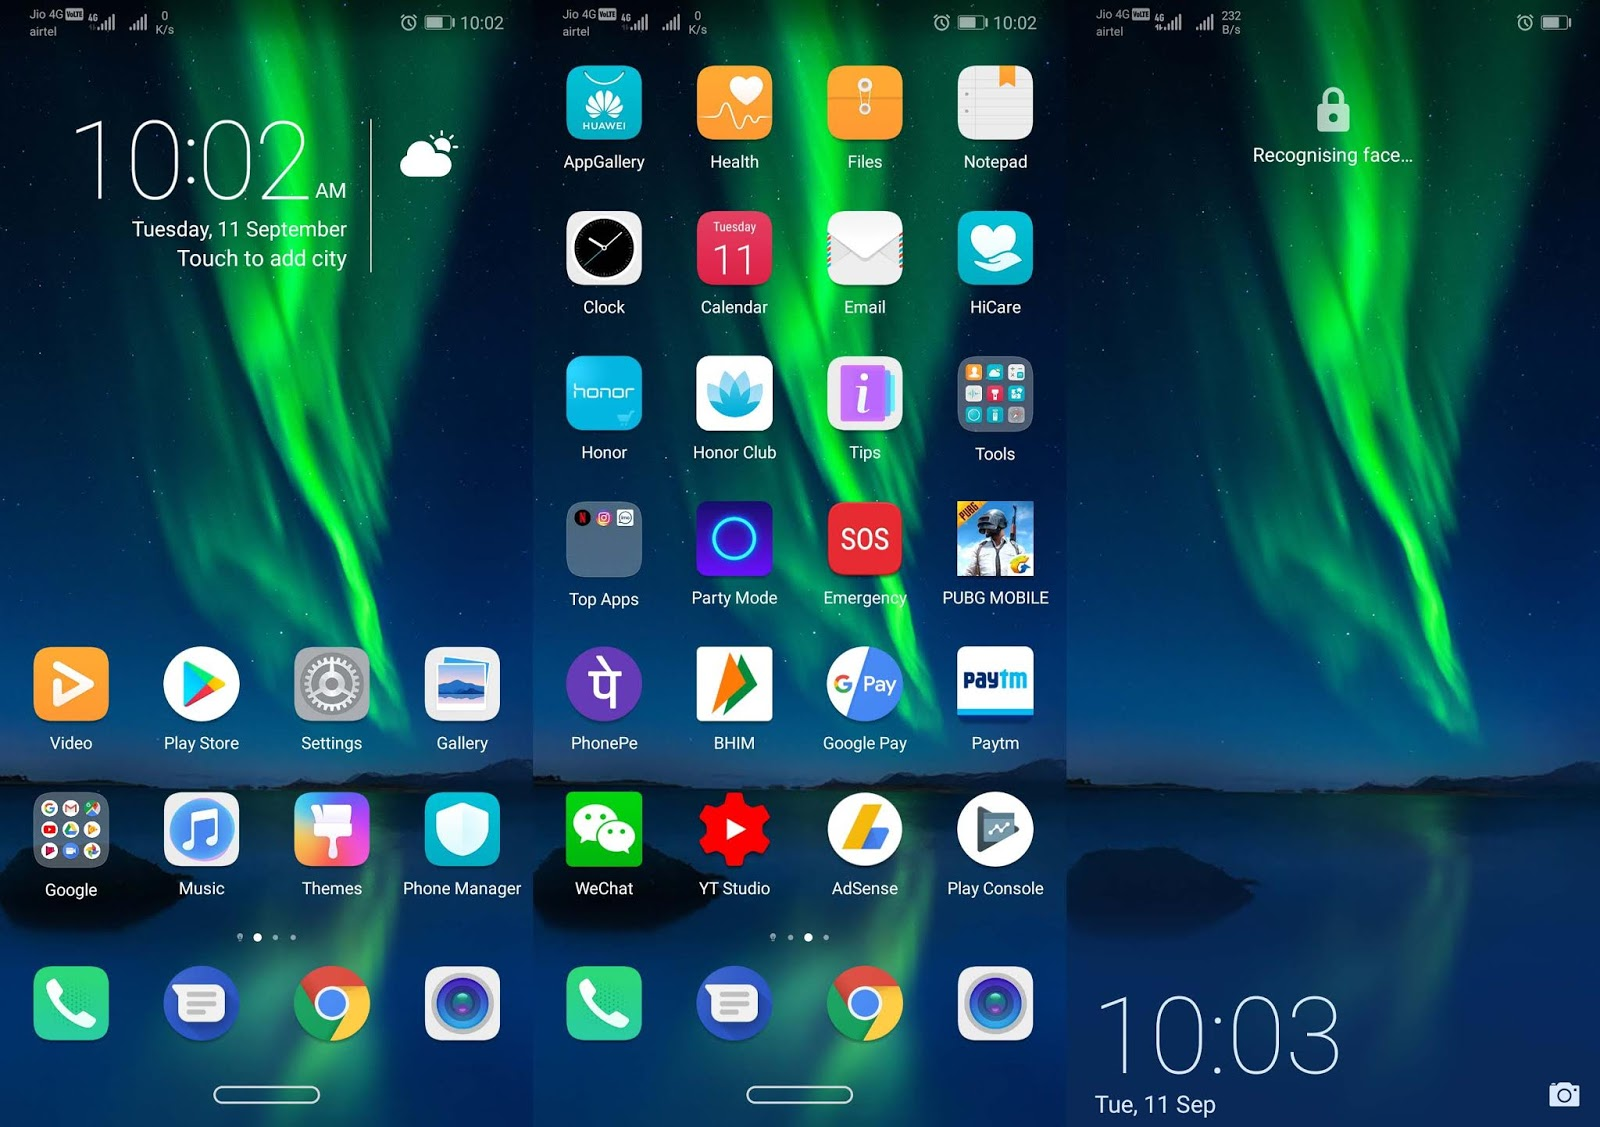 HONOR 8X THEMES] Download Latest Honor 8X Stock Themes For EMUI 5/8